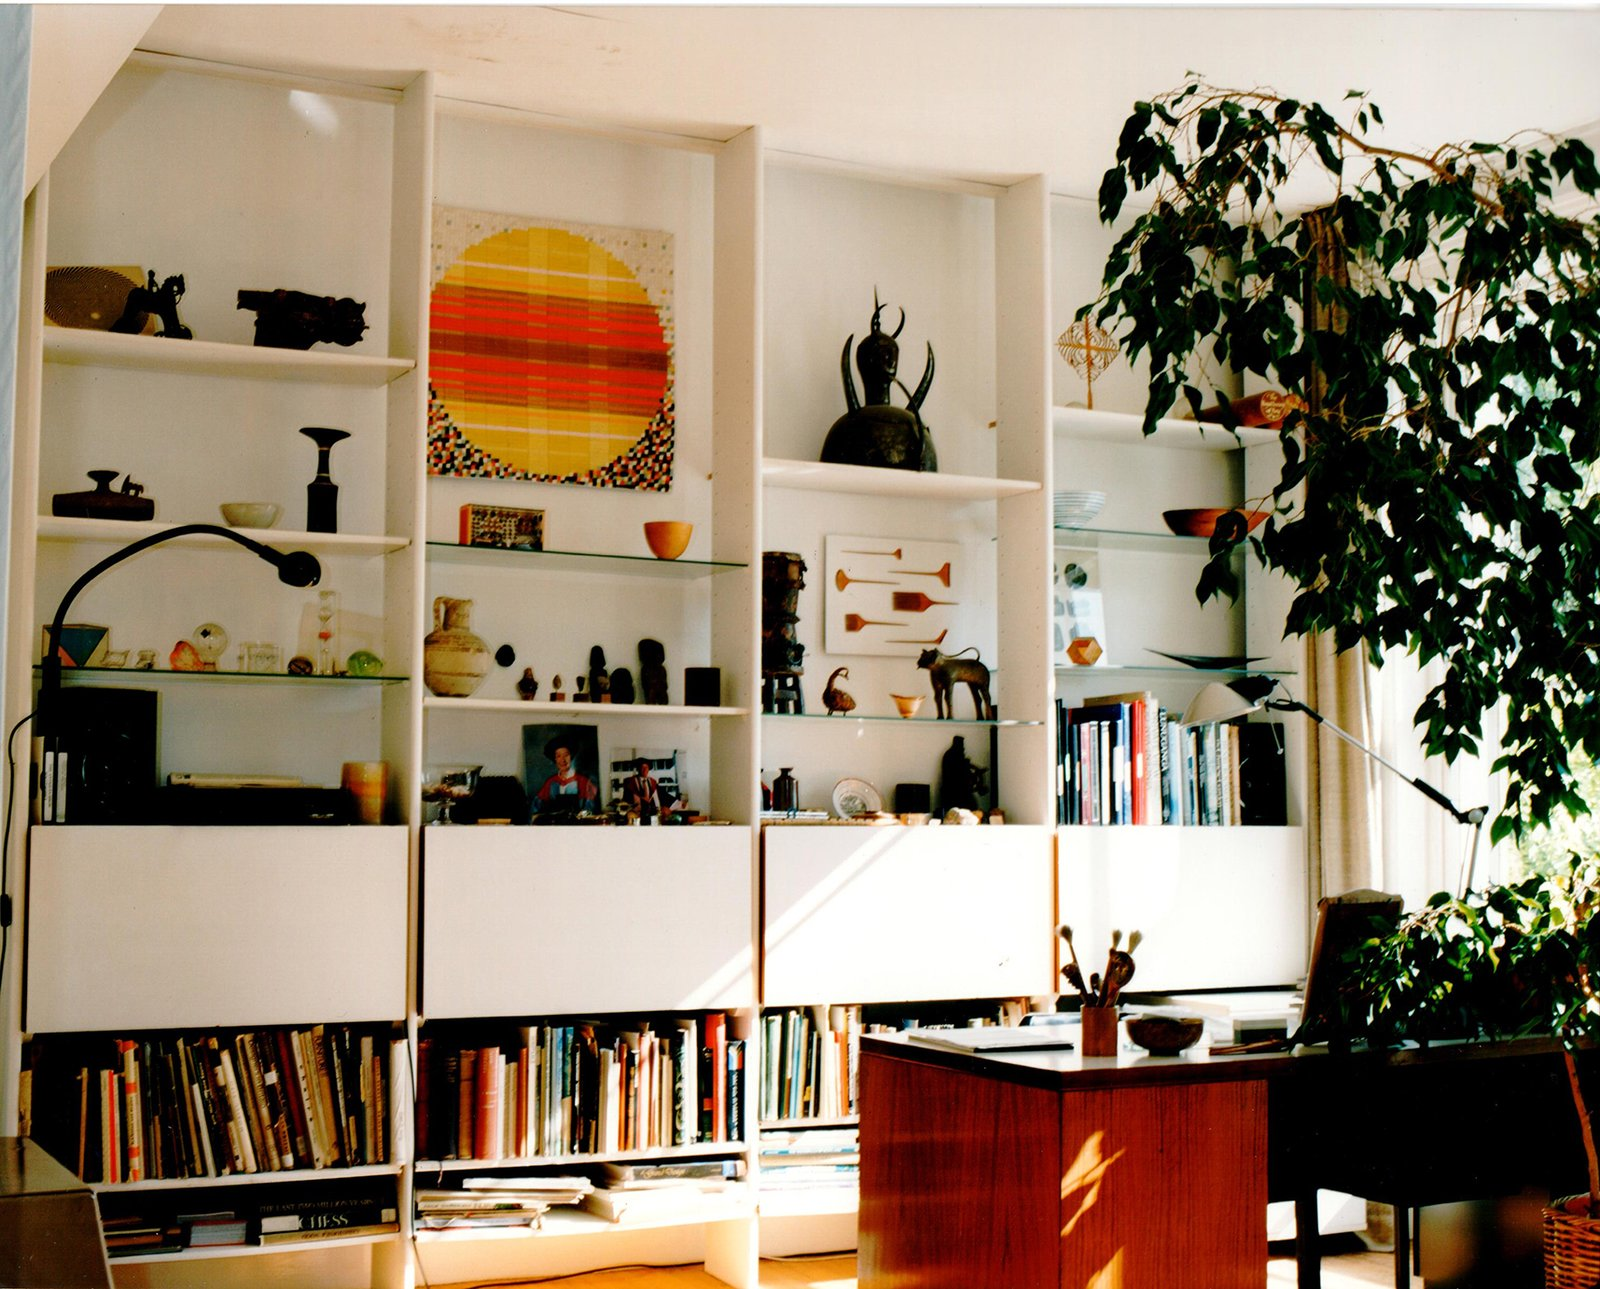 the open-plan living room in Robin and Lucienne Day's home on Cheyne Walk in London's Chelsea, furnished with their designs. The couple, who met at the Royal College of Art in 1940 and were married in 1942, lived there for nearly 50 years. Image courtesy The Robin & Lucienne Day Foundation.  Photo 2 of 5 in All in a Day's Work